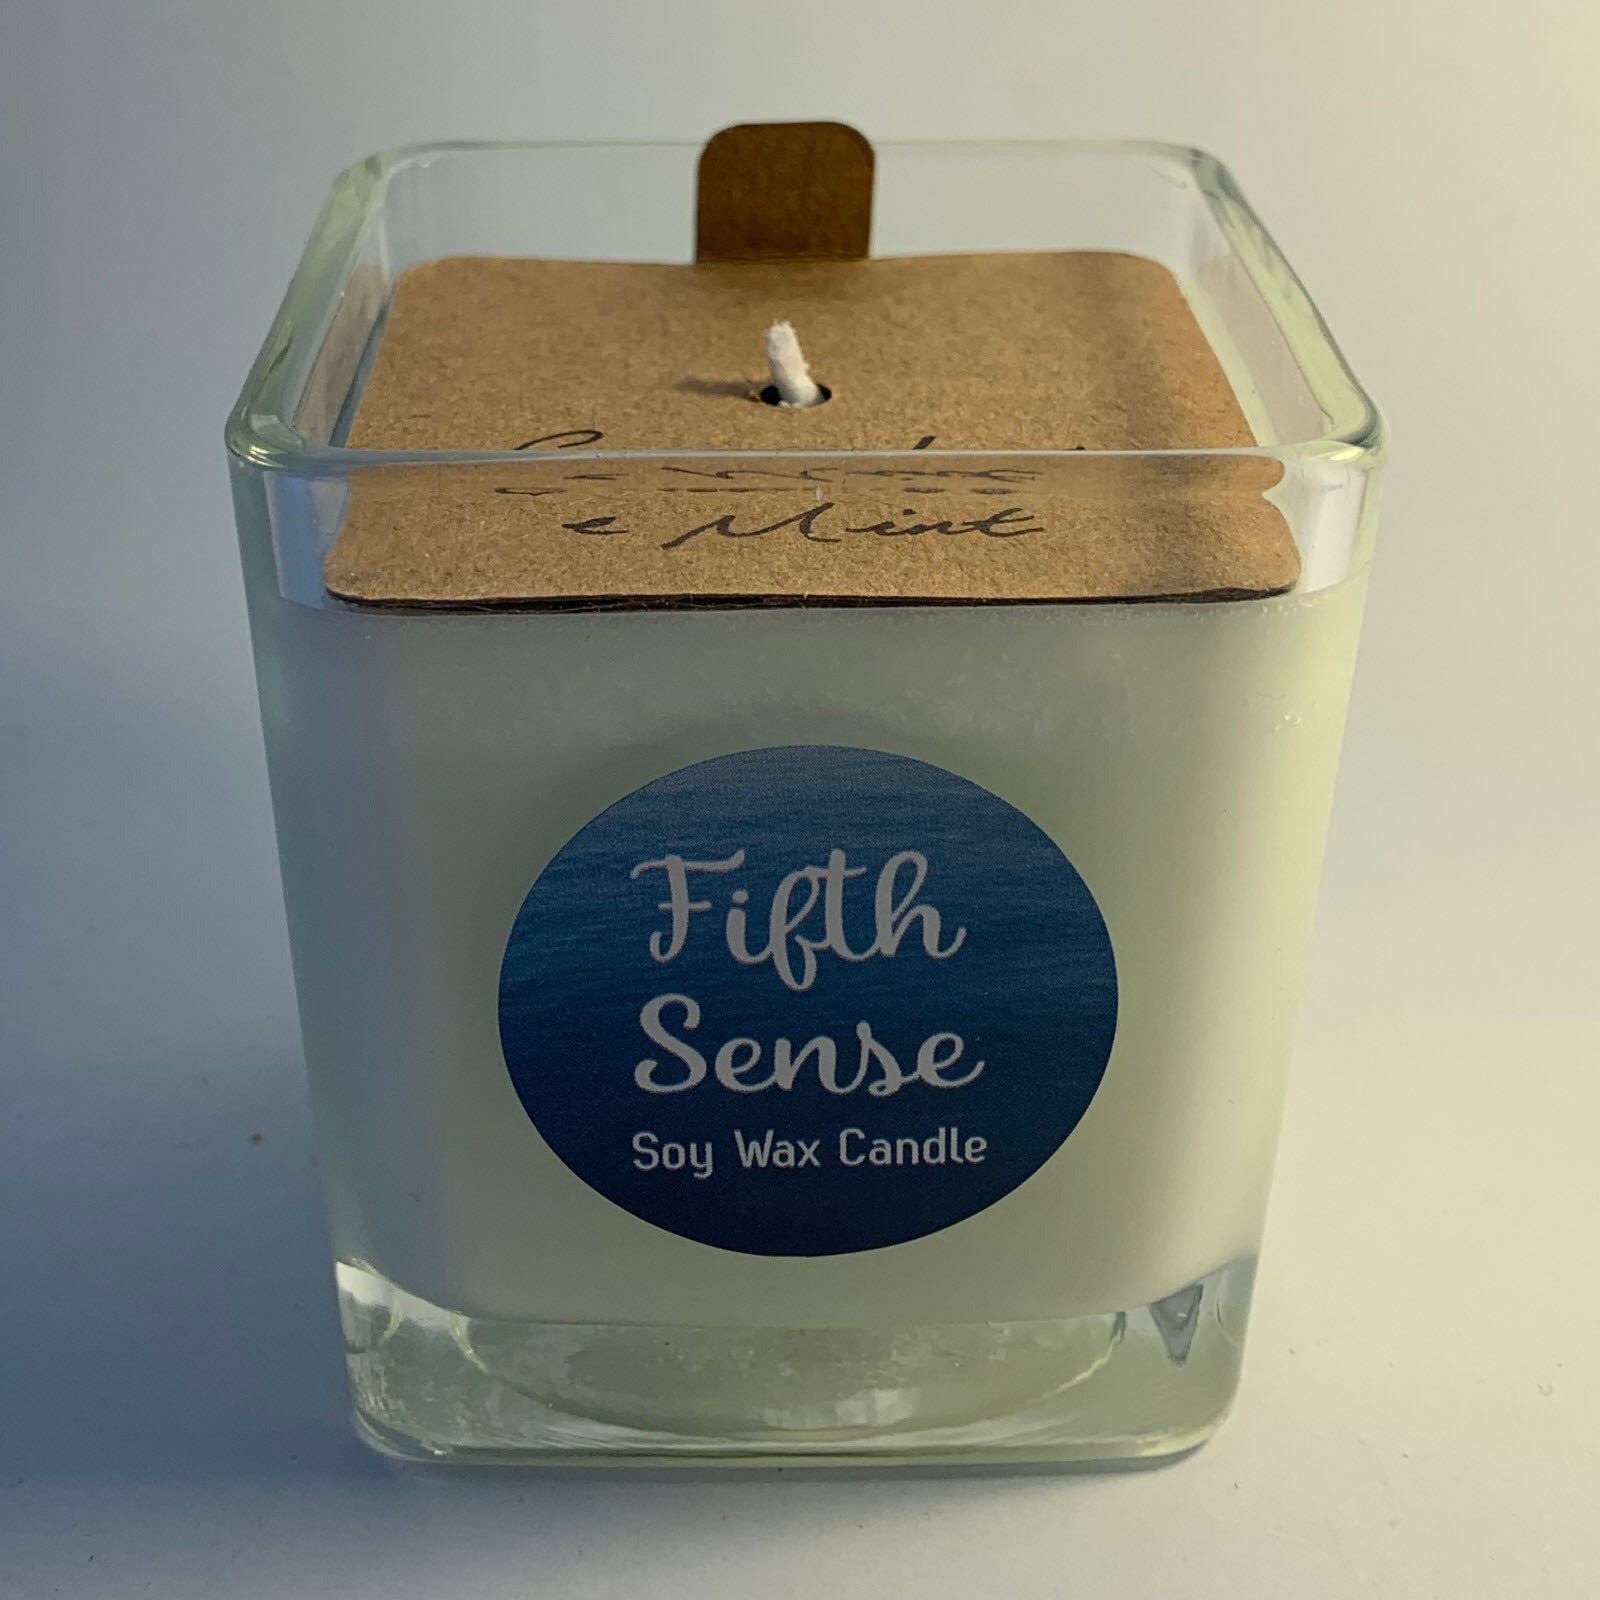 'Cucumber & Mint' Fifth Sense Scented Candle (Was £8.00)